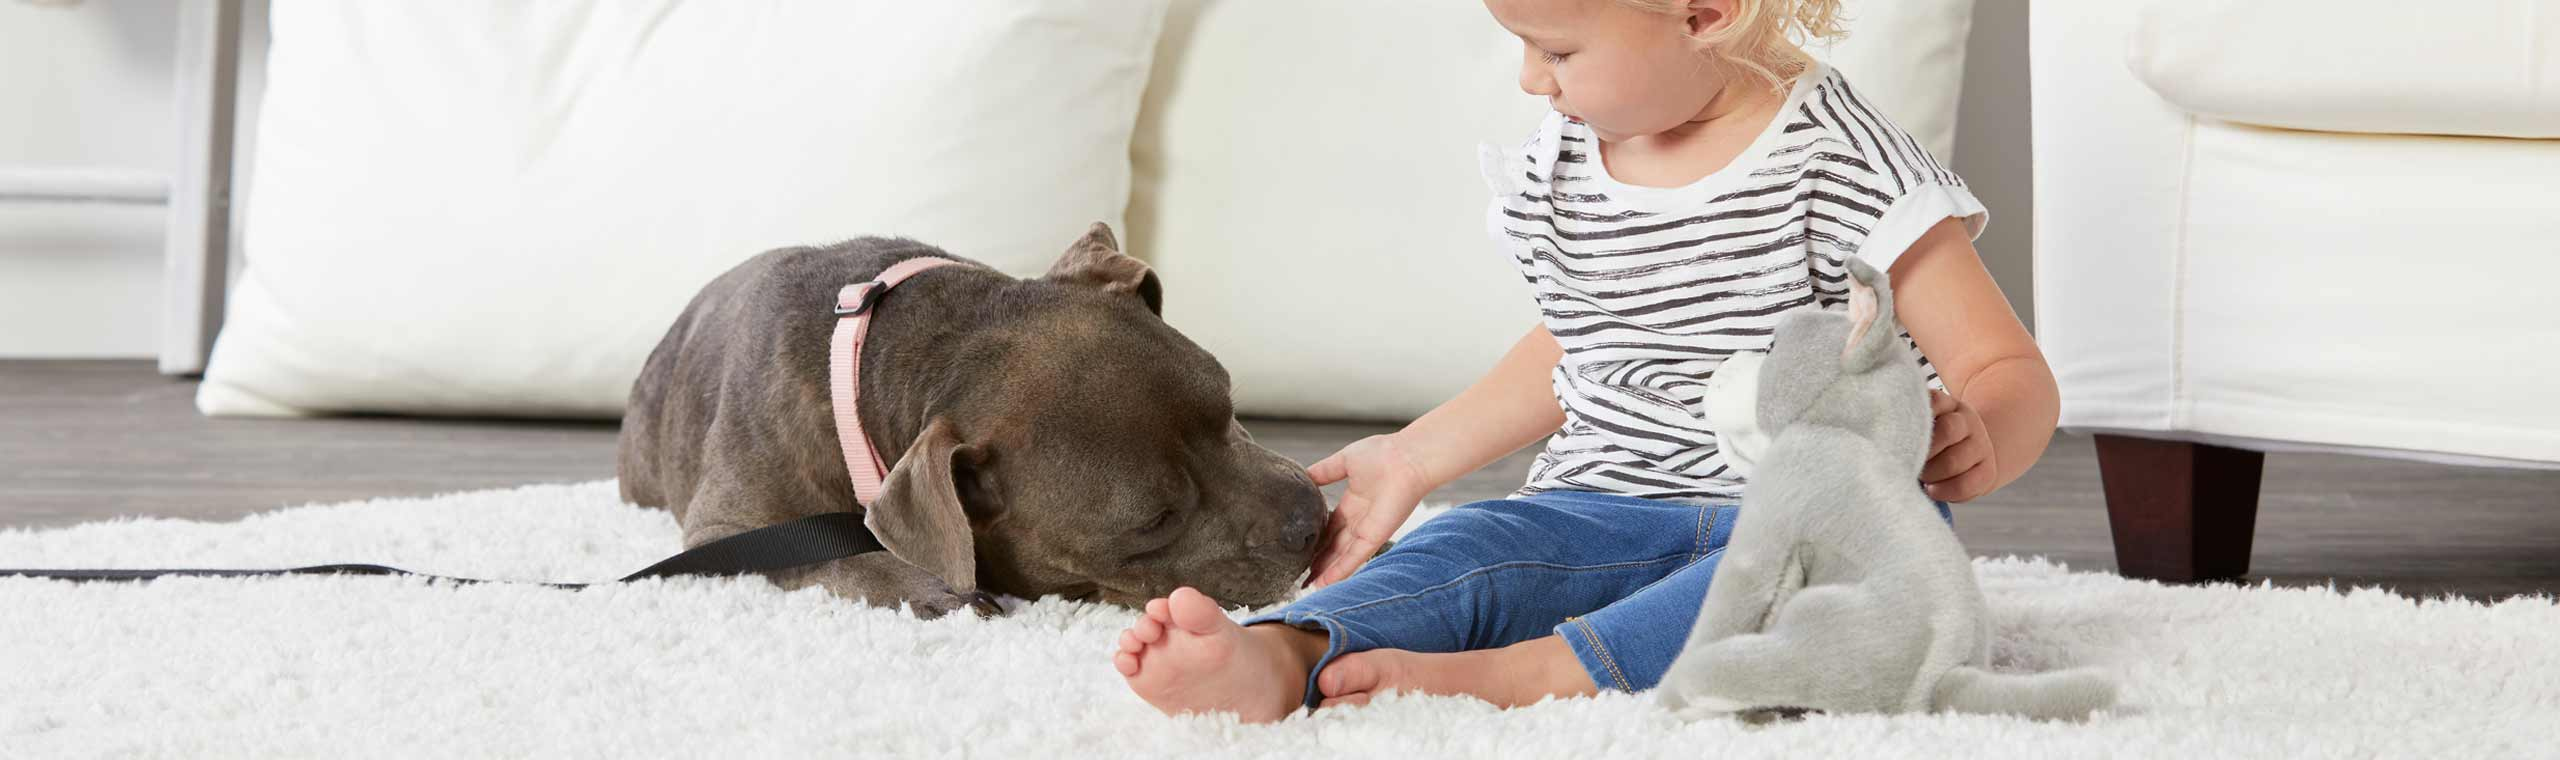 Toddler with dog stuffed animal and pet dog playing on the living room floor